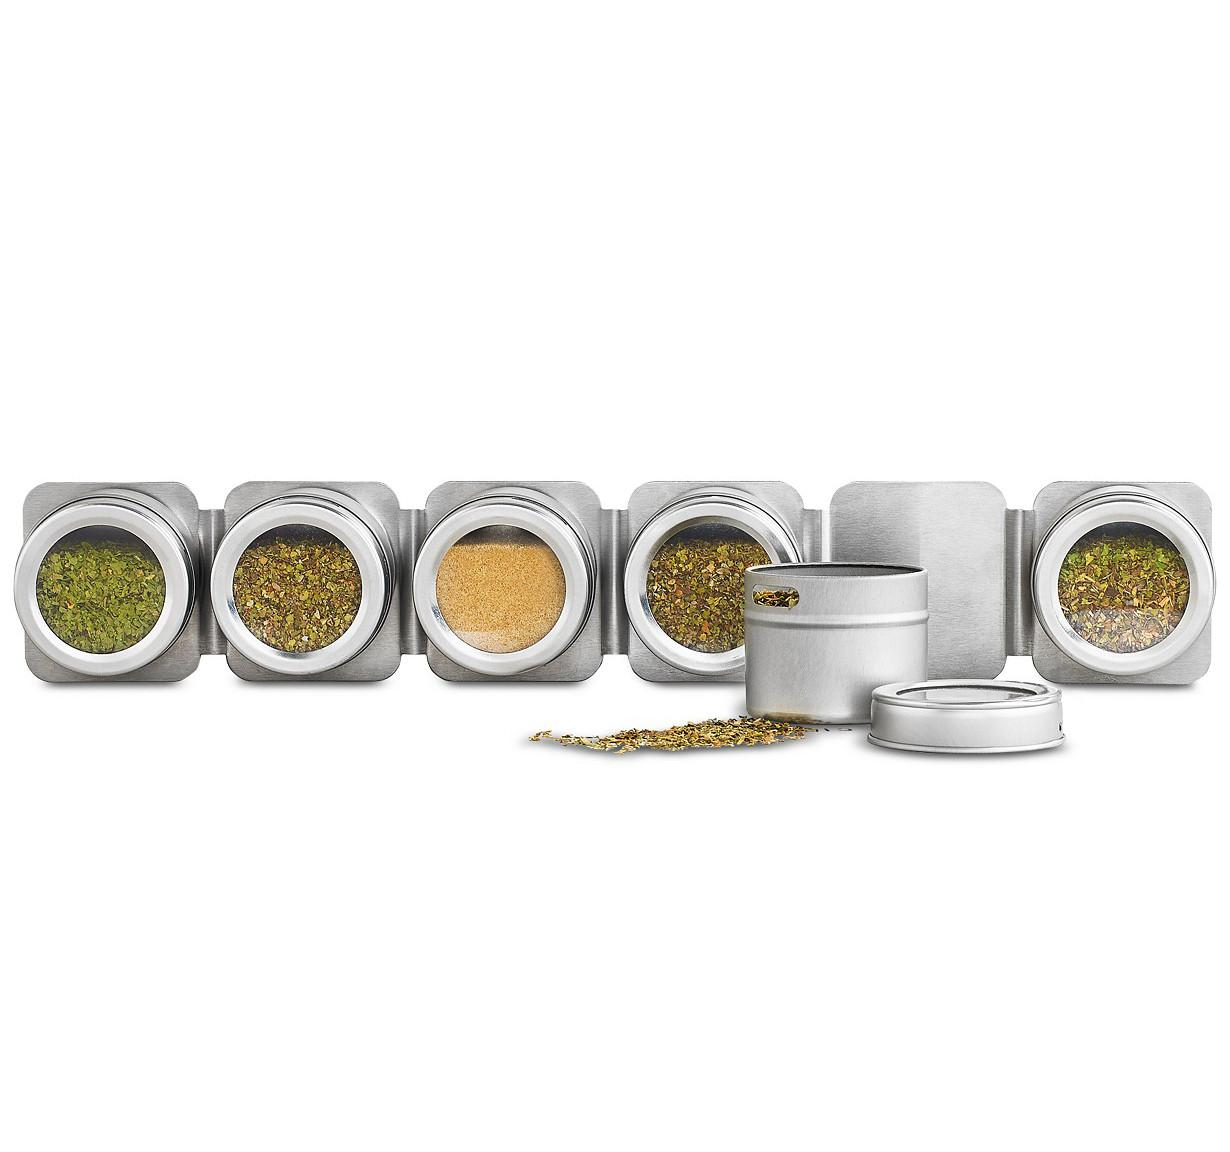 Martha Stewart Collection Magnetic Tin Spice Rack for $12.99